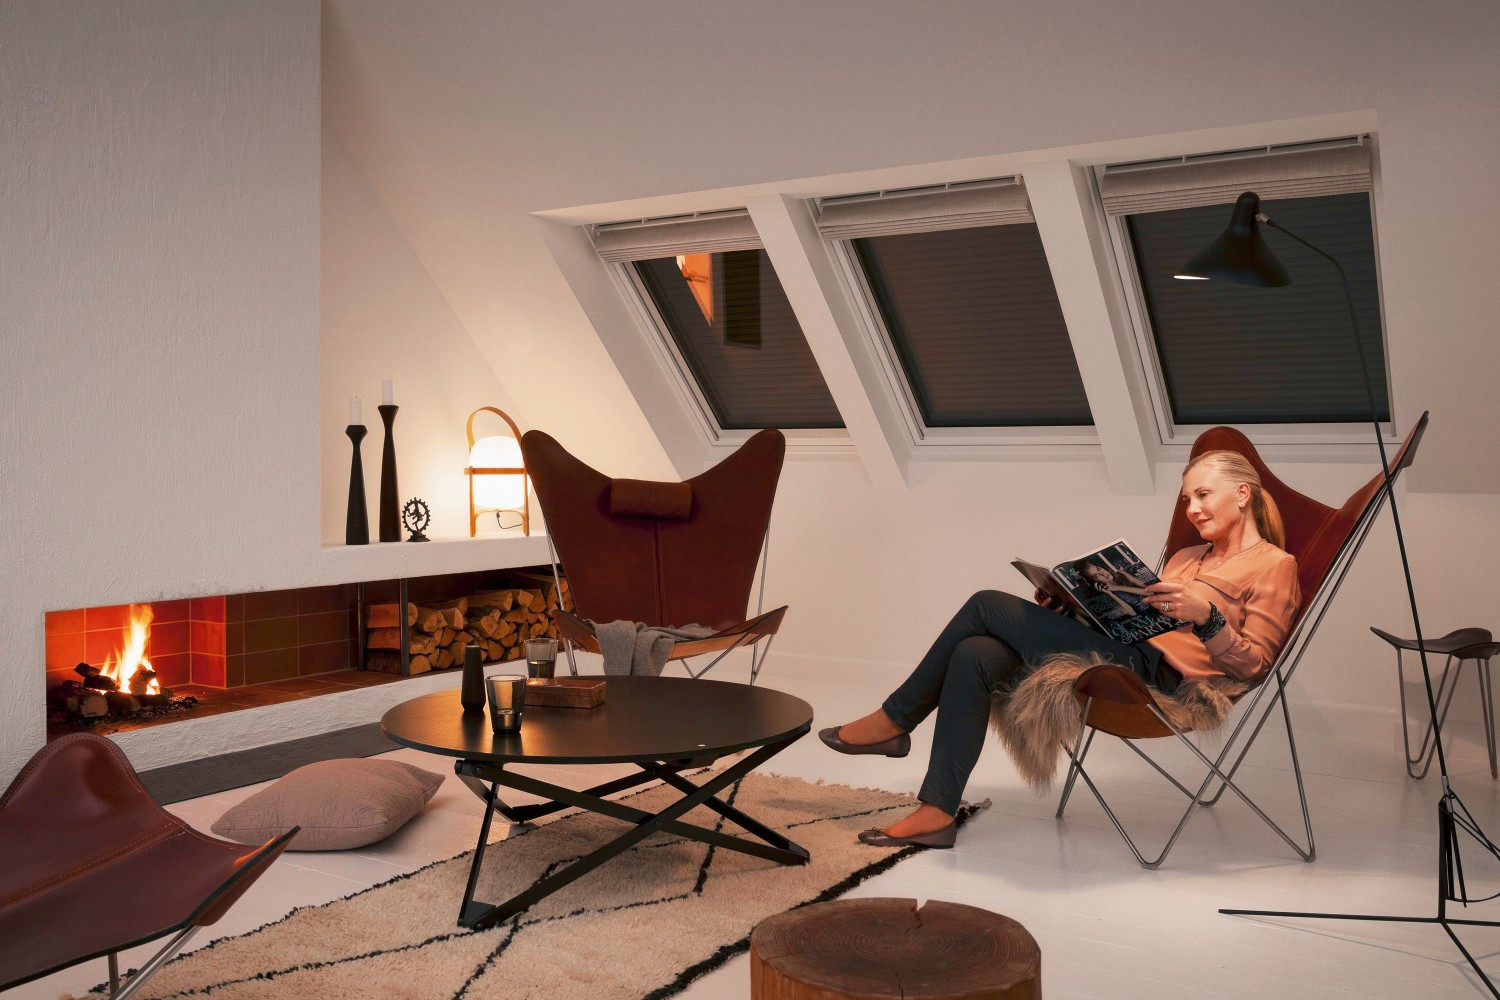 velux rolll den f r dachfenster verbessern die w rmed mmung. Black Bedroom Furniture Sets. Home Design Ideas